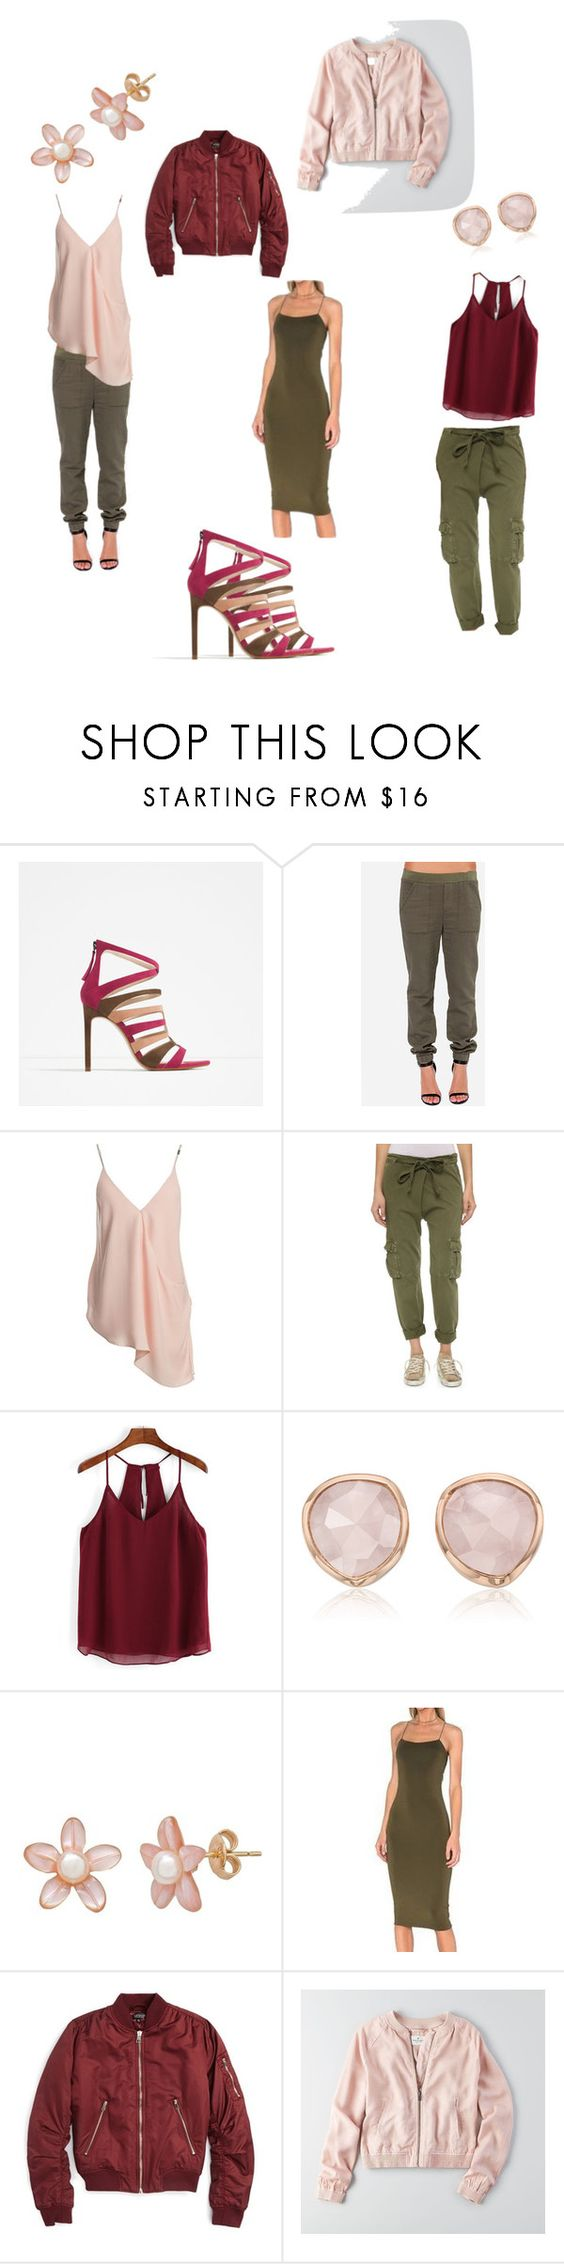 """""""Ideas for my new shoes!!!"""" by mika74 ❤ liked on Polyvore featuring Zara, Sans Souci, Current/Elliott, Monica Vinader, Topshop and American Eagle Outfitters"""